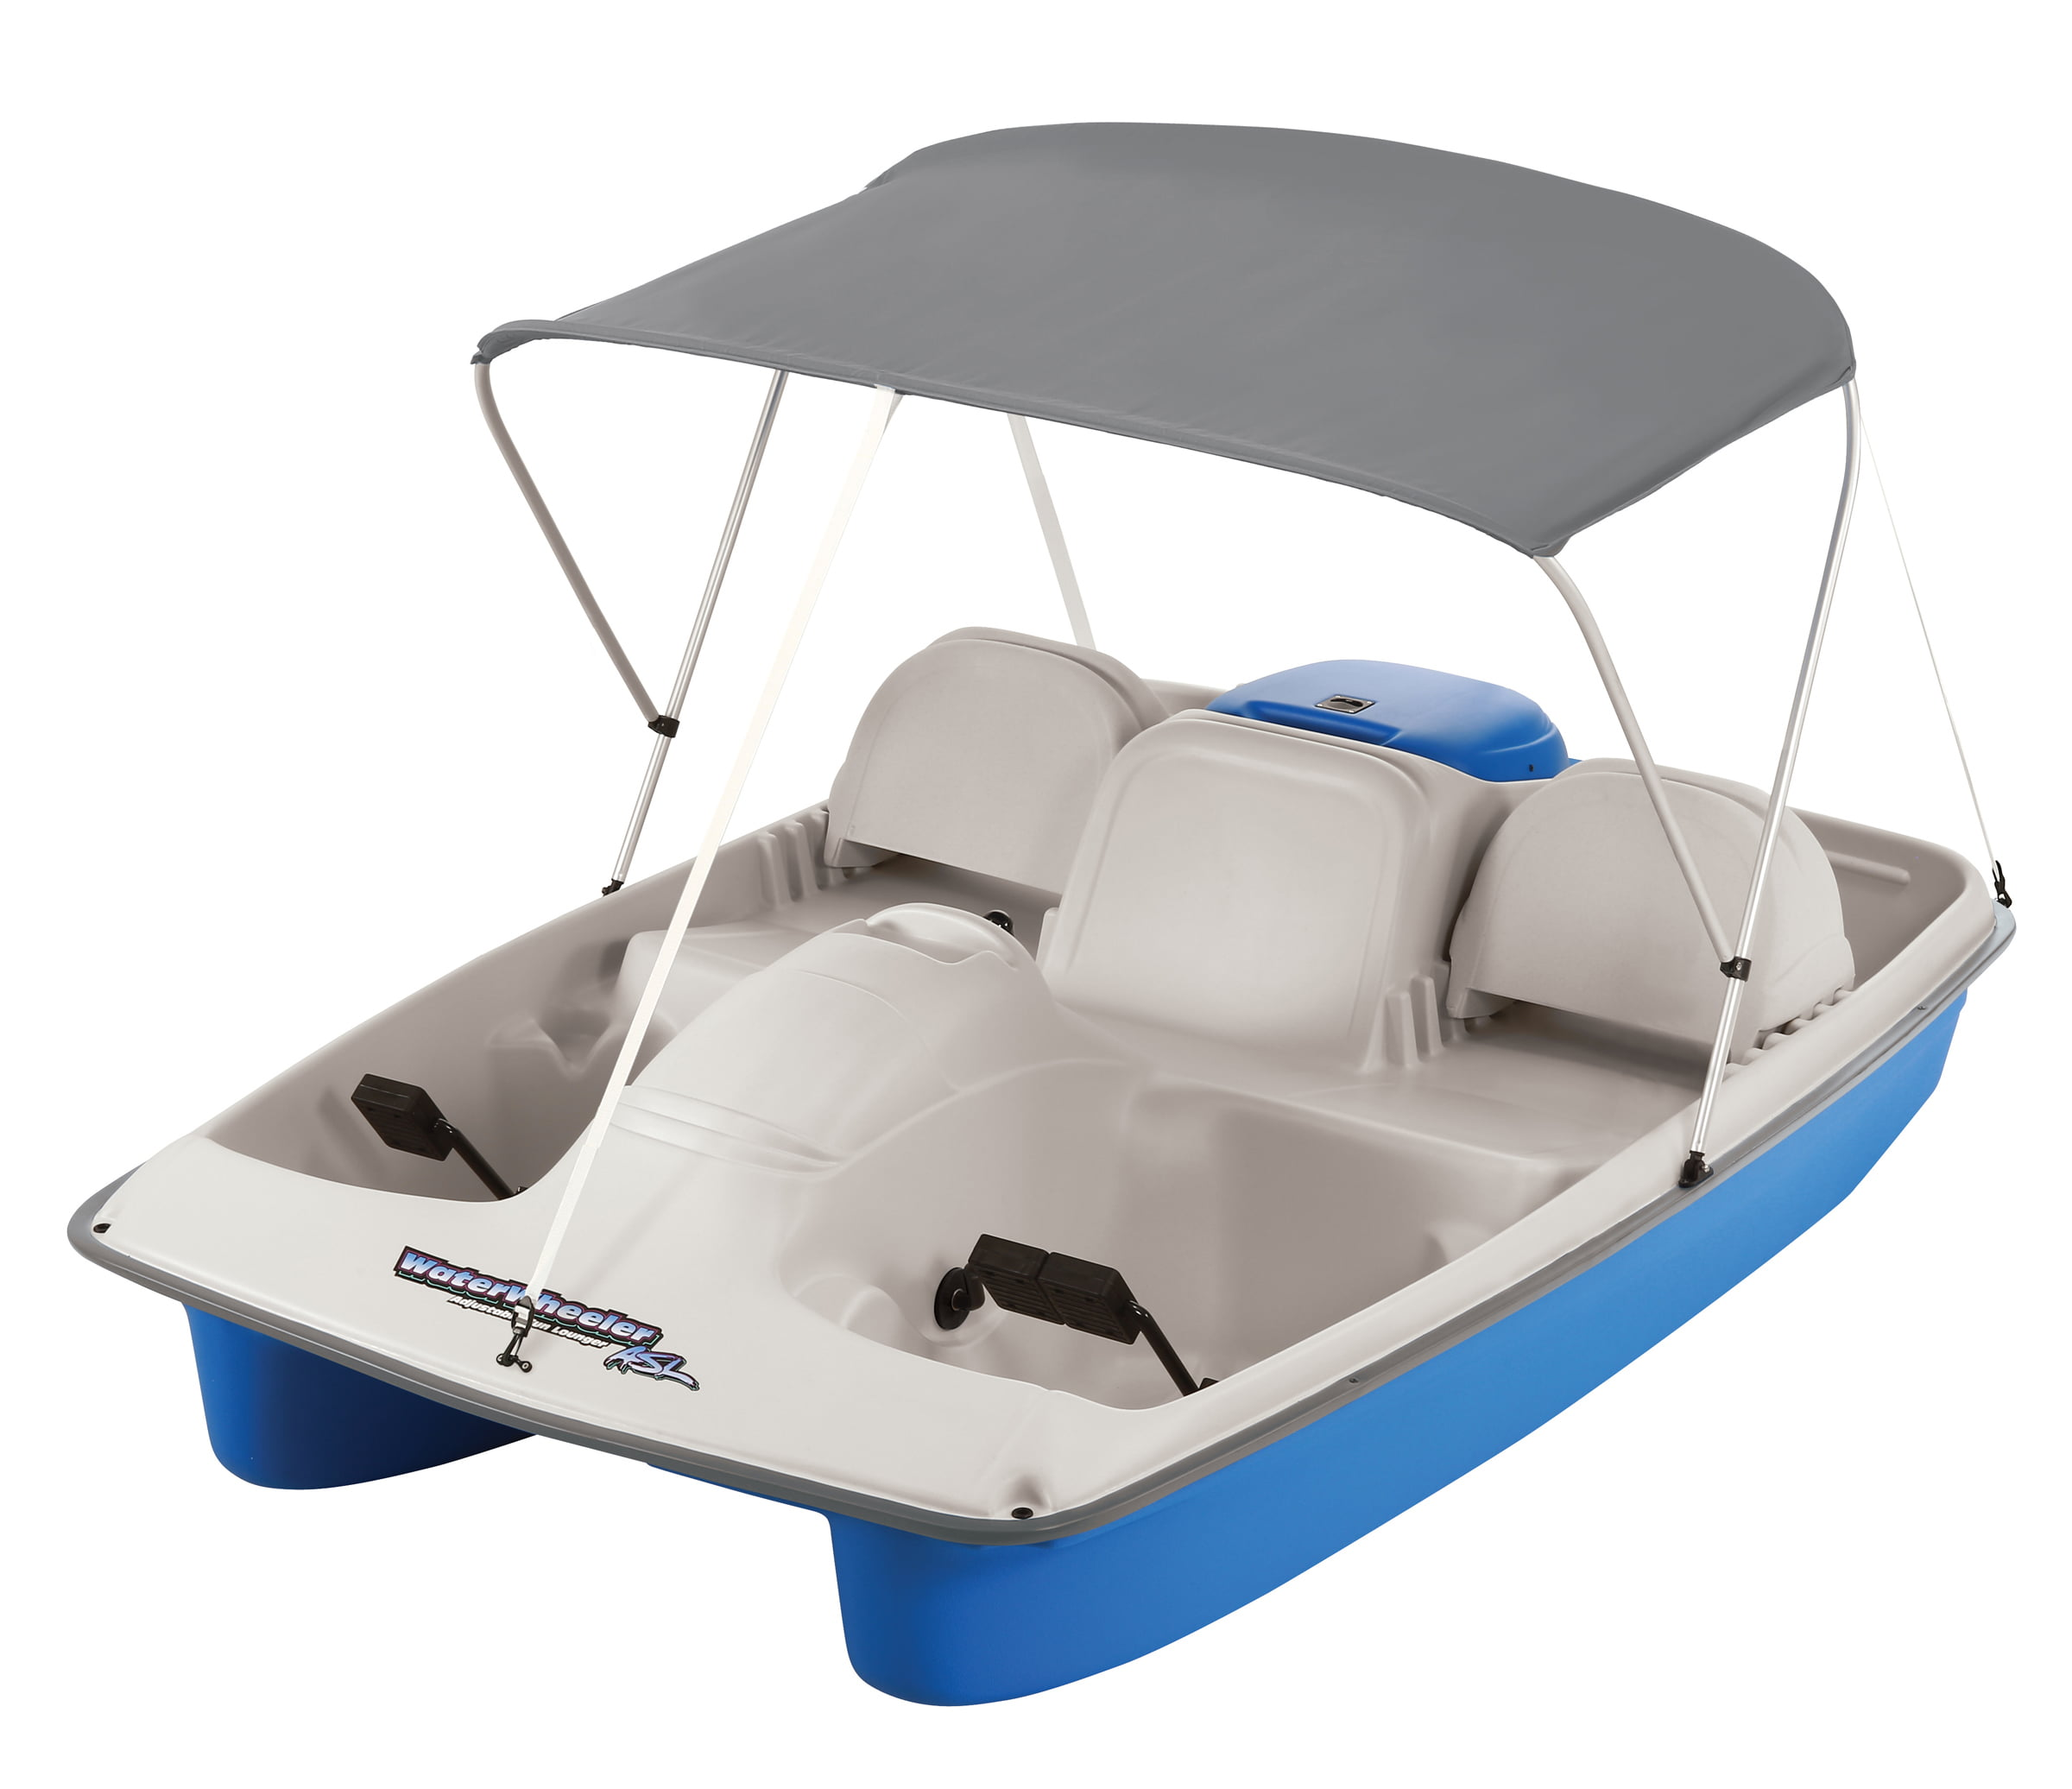 Click here to buy Water Wheeler ASL Electric Pedal Boat with Canopy, Blue by KL Outdoor.